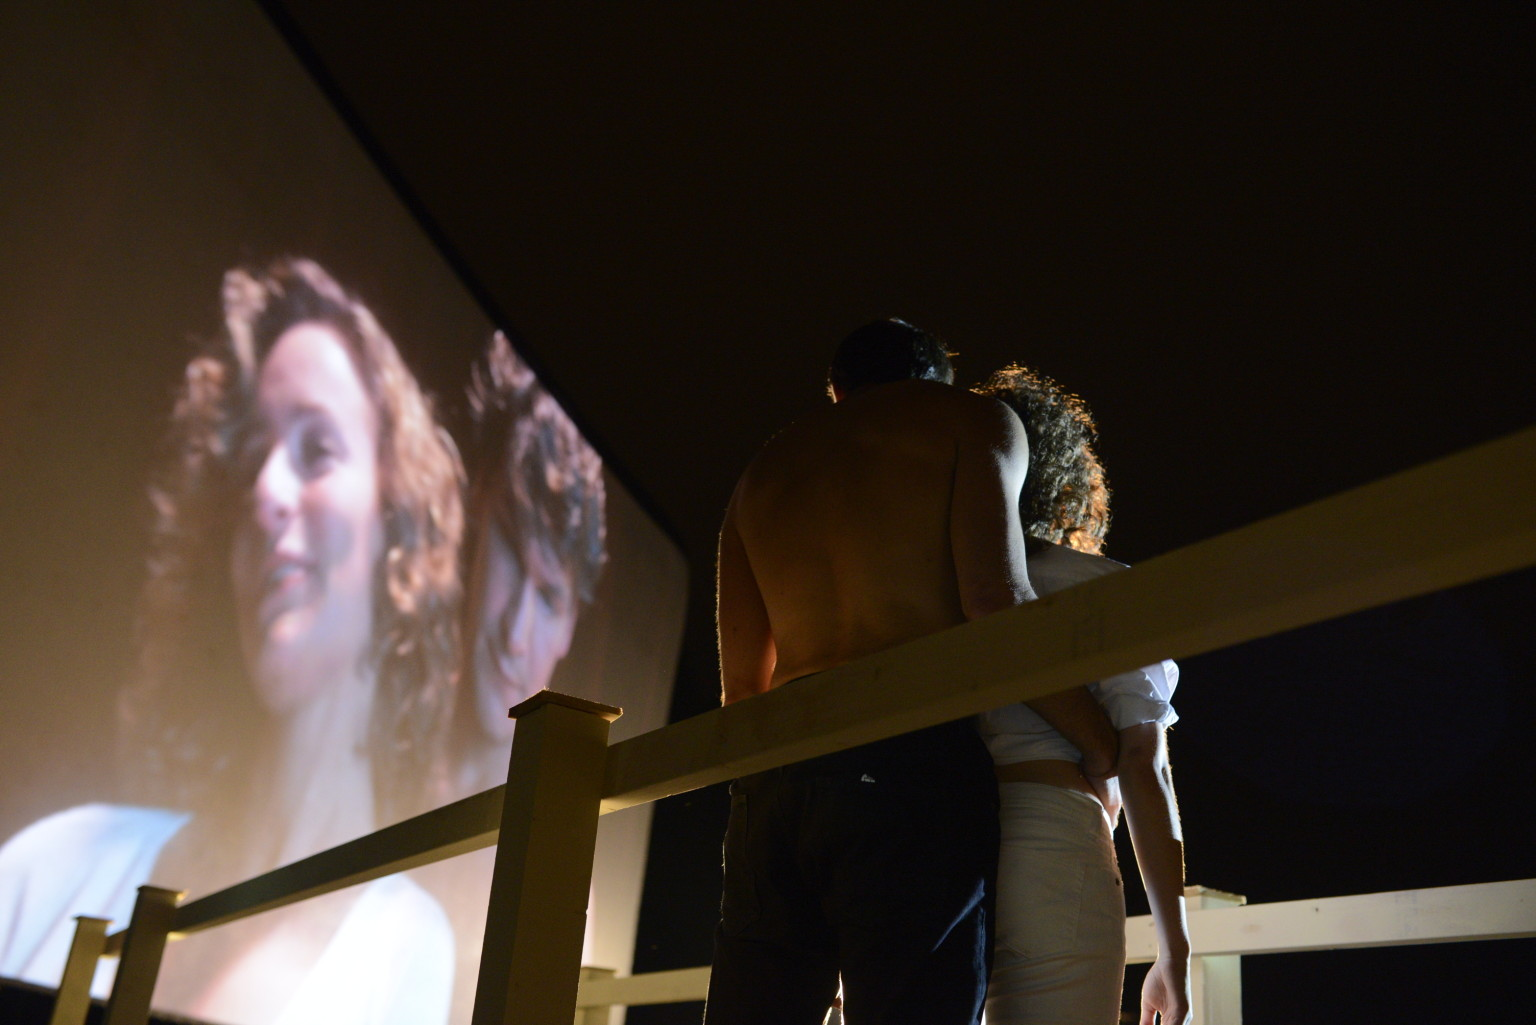 Future Cinema 'Dirty Dancing': Thousands Of Baby Fans ...